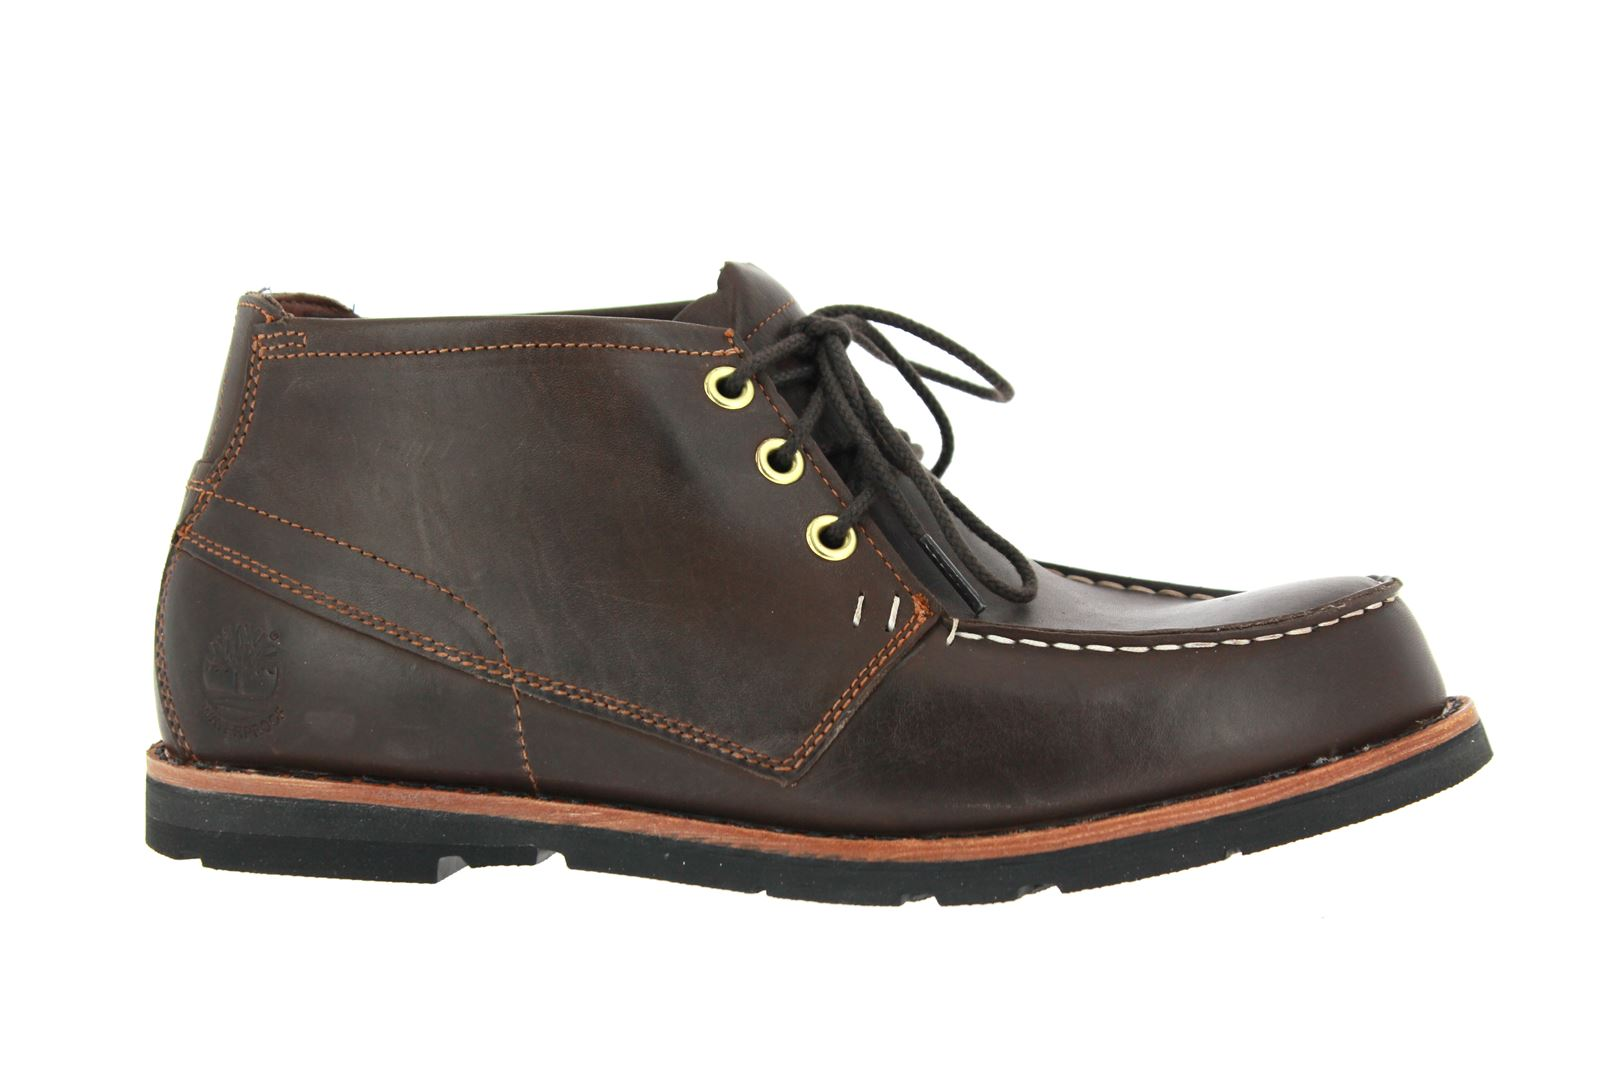 Timberland Schnürboot RUGGED CHUKKA DARK BROWN (42)